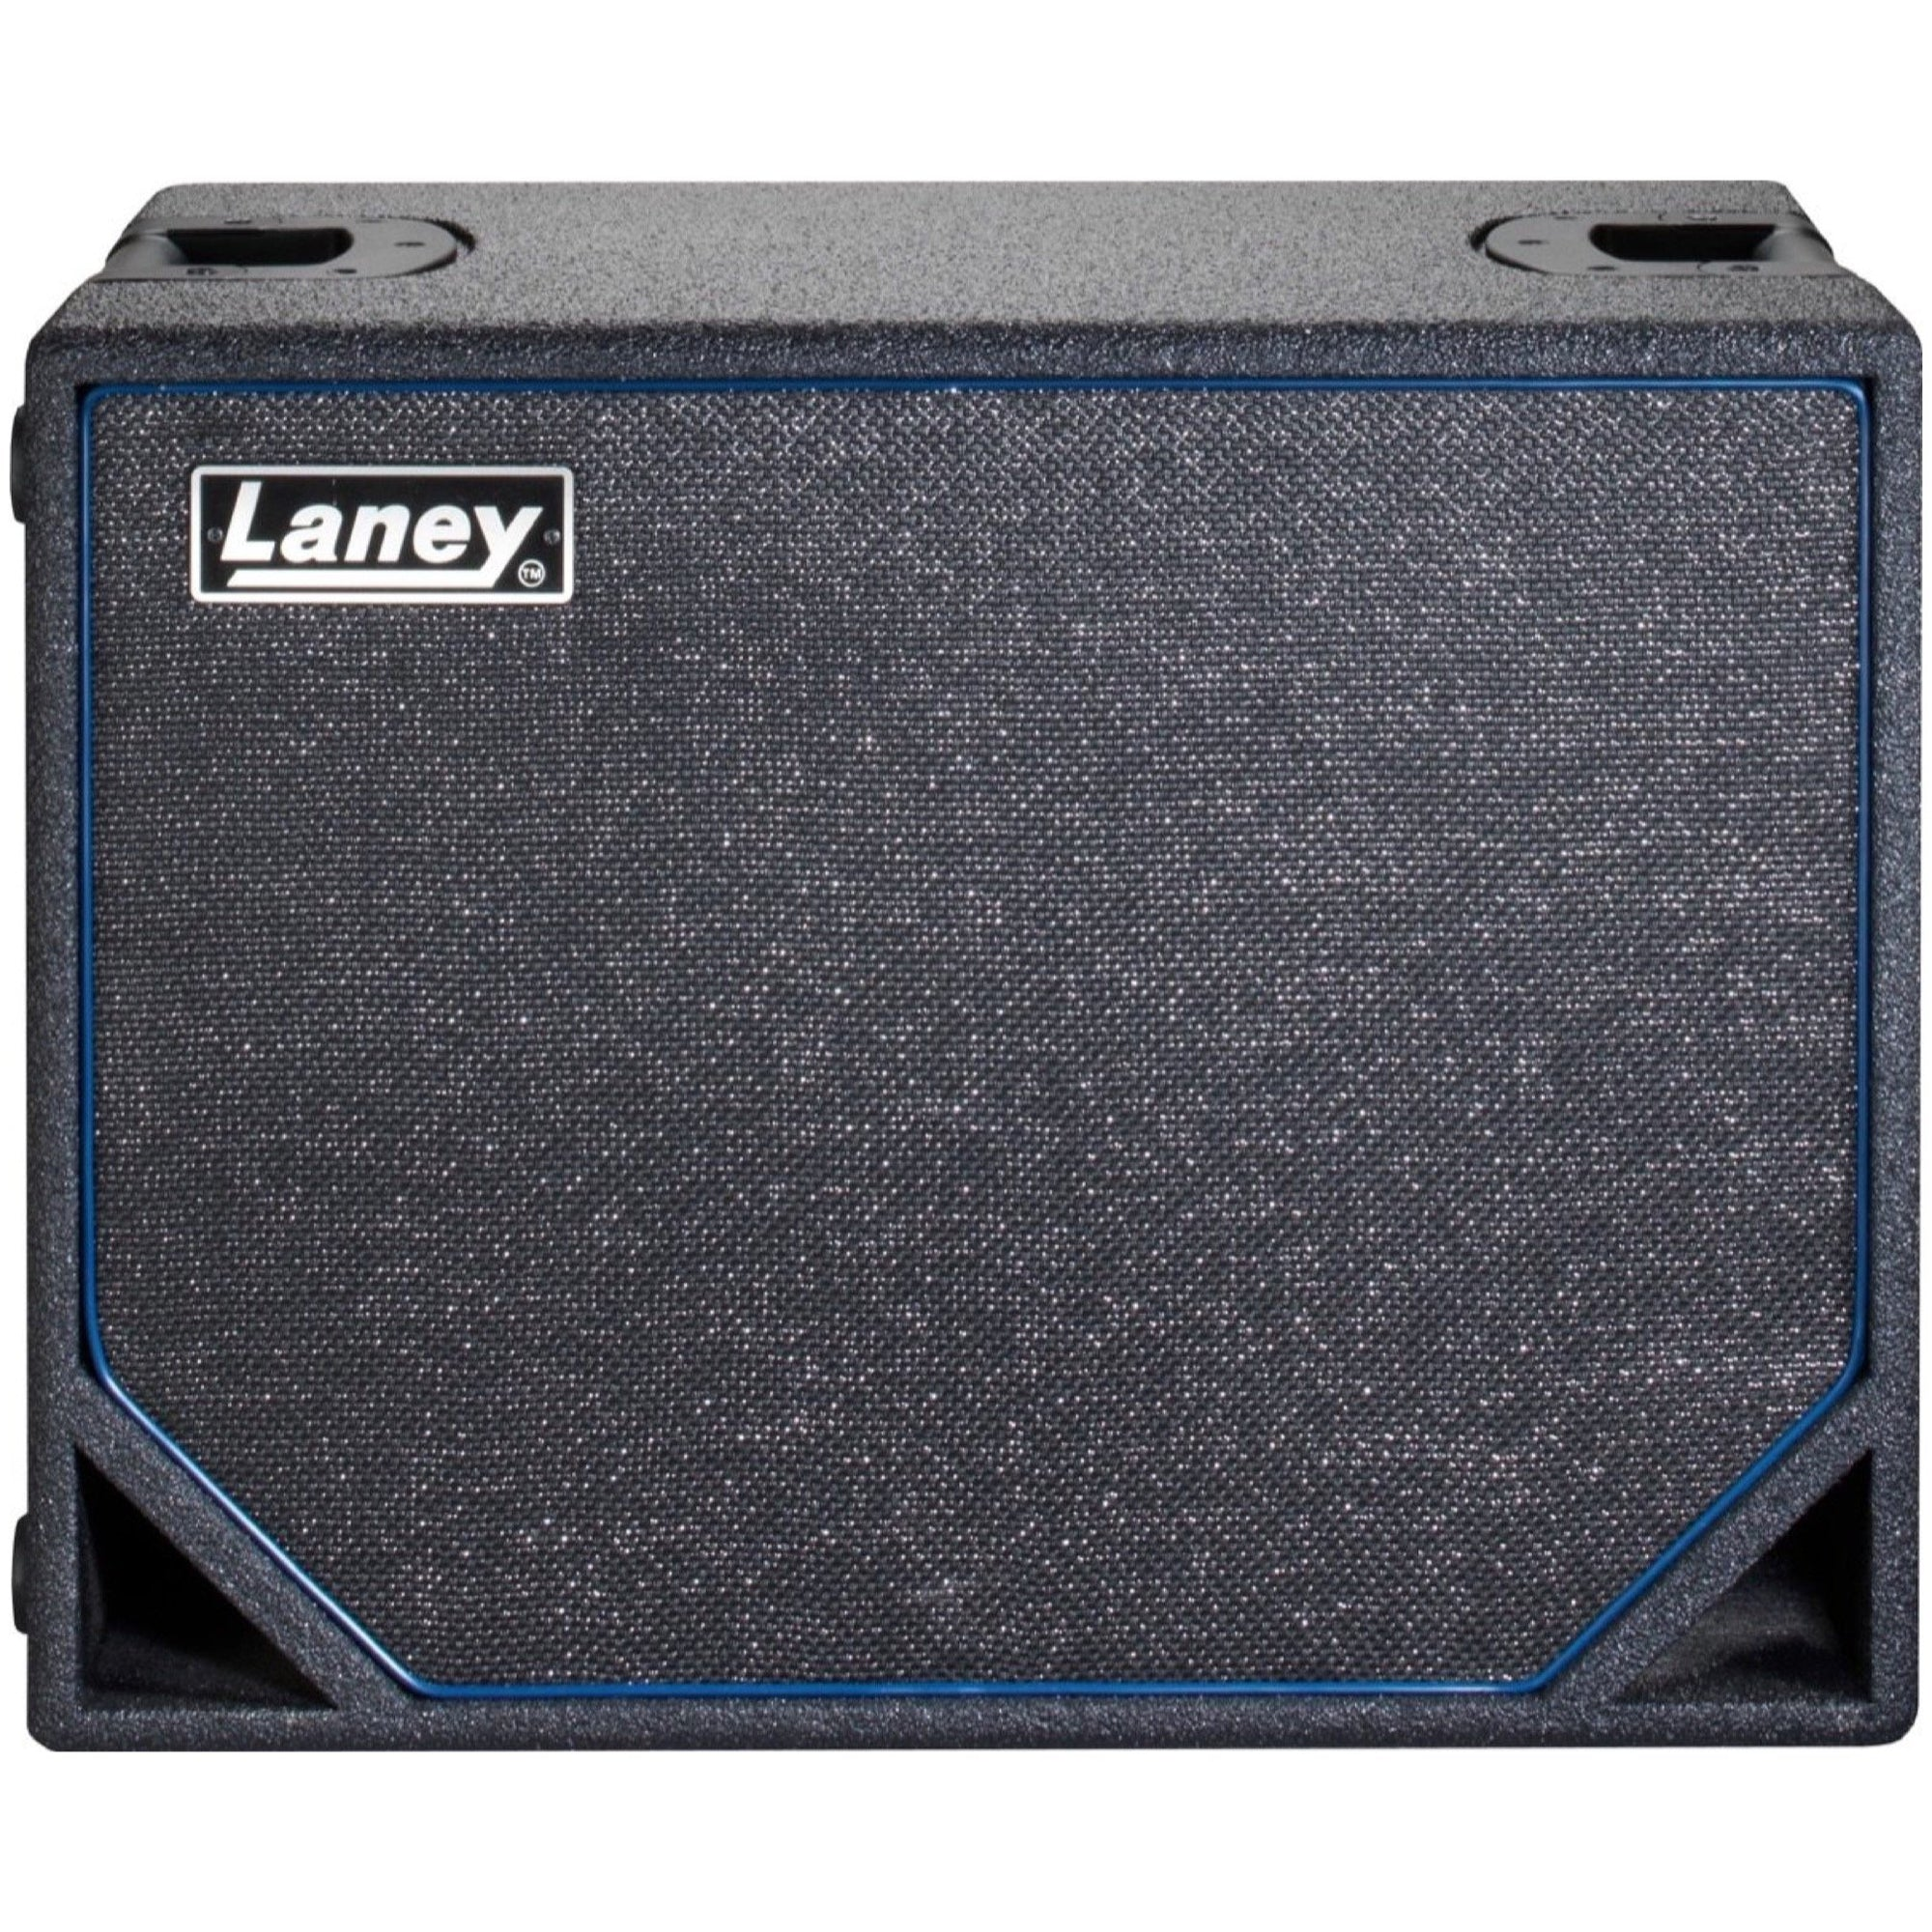 Laney N115 Nexus Bass Speaker Cabinet (400 Watts, 1x15 Inch), 8 Ohms